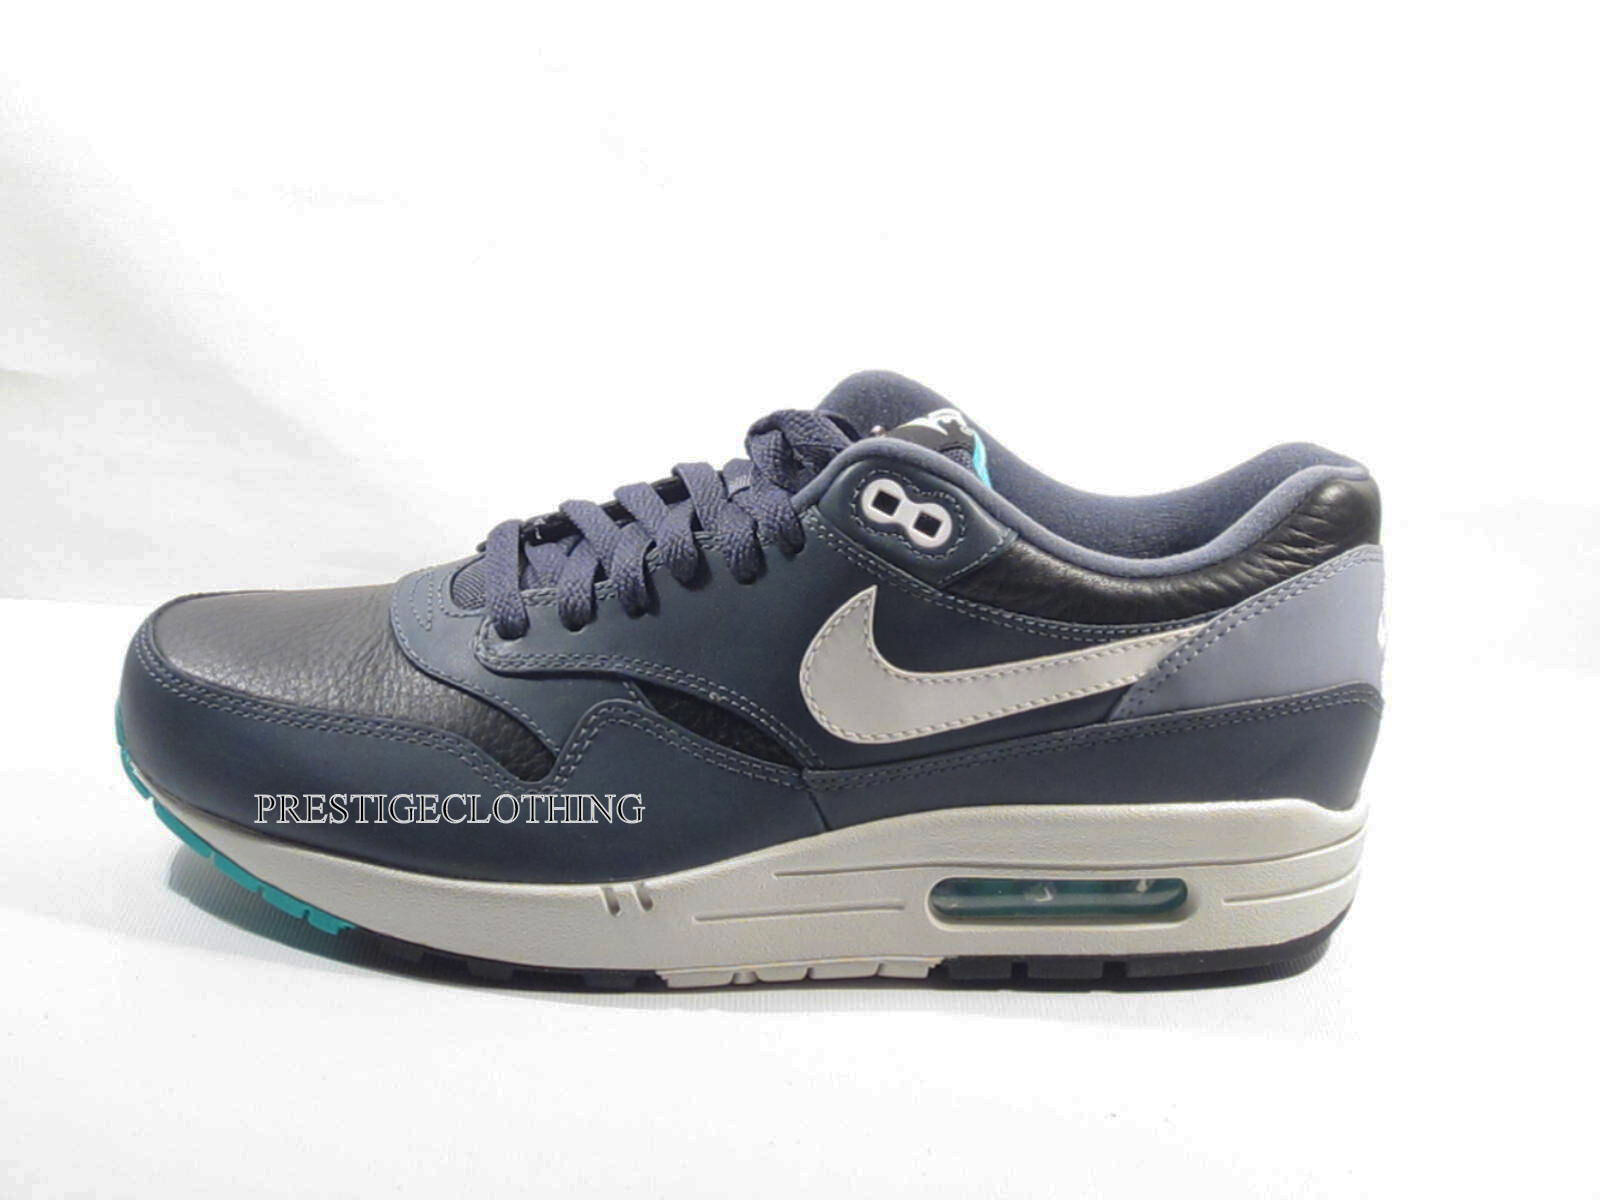 Original Nike Air Max 1 Leather Black Grey Whie Rare Trainers 6544666002